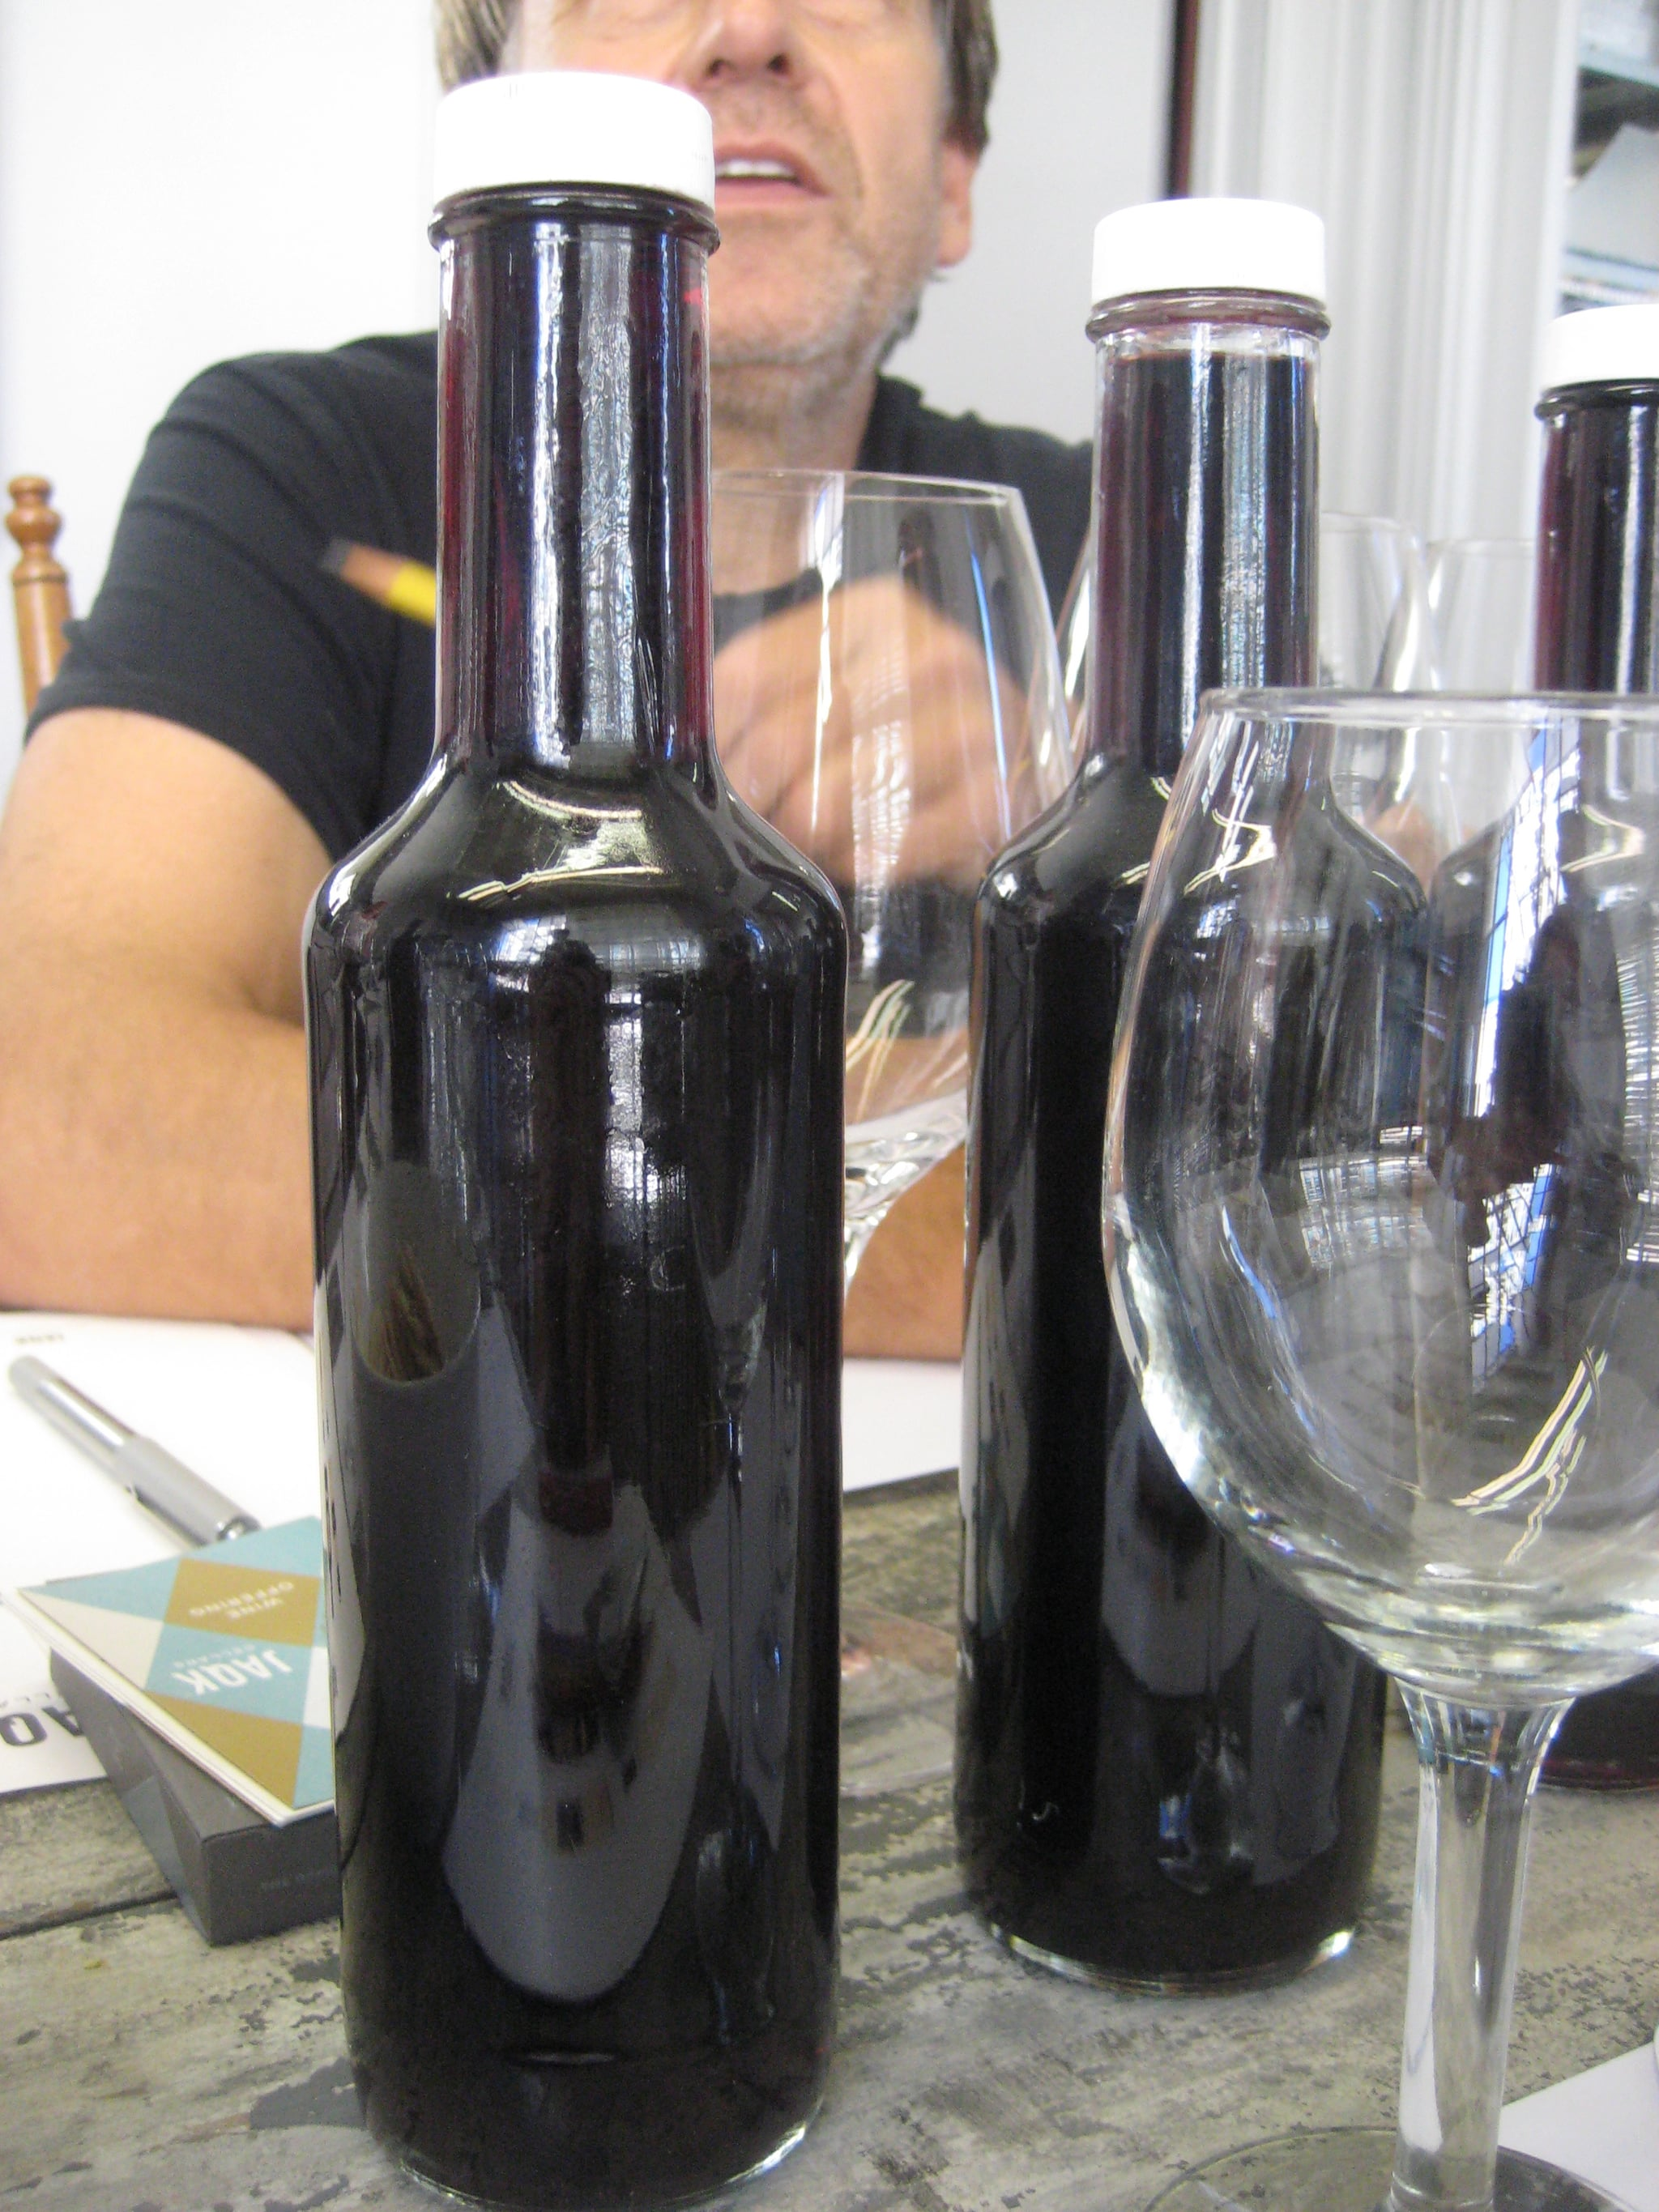 Since the wine has not been released, everything we tasted were barrel samples.